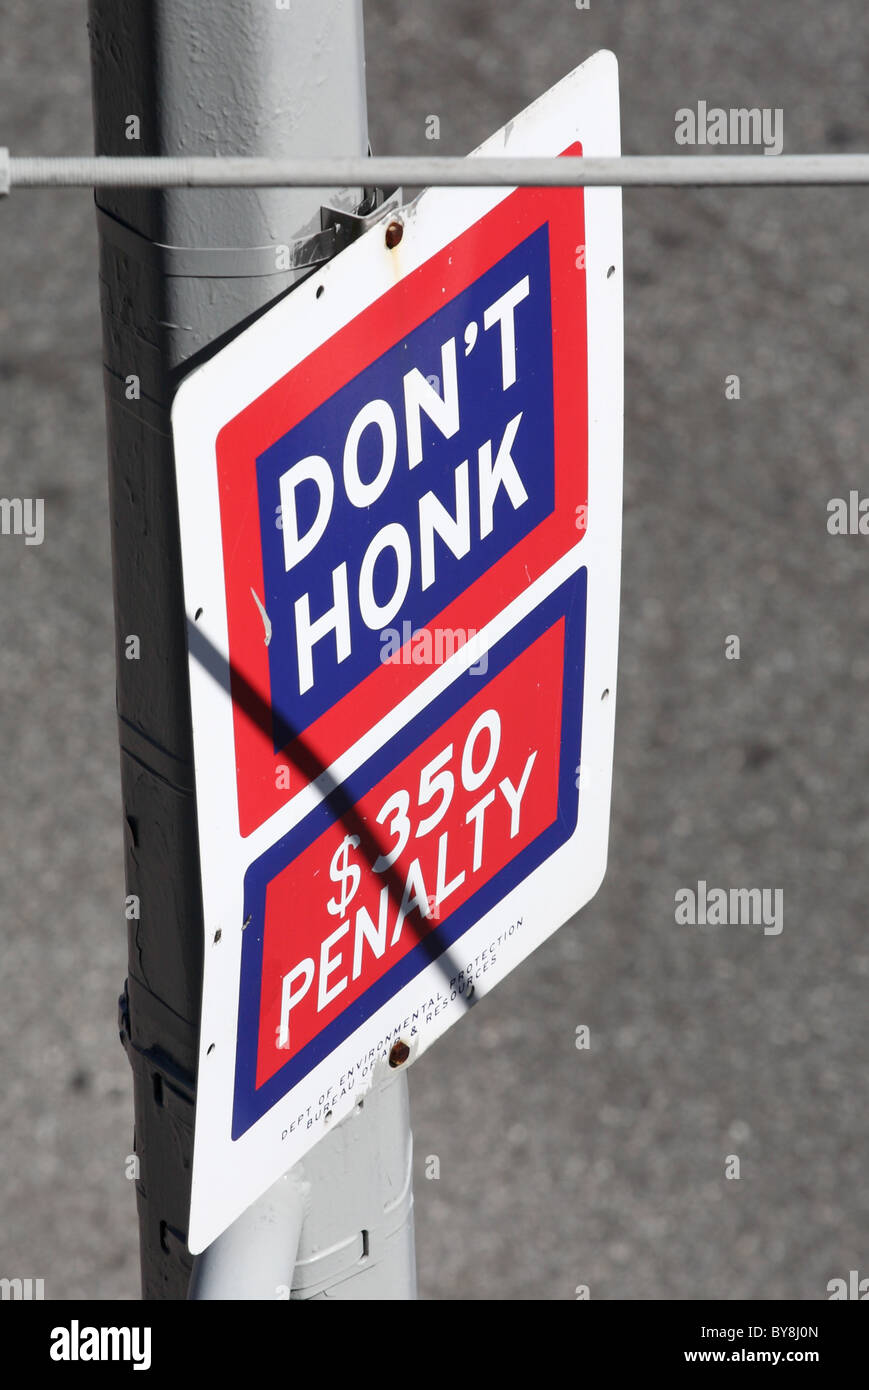 Don't Honk sign seen from the High Line public park, Manhattan, New York, USA. - Stock Image